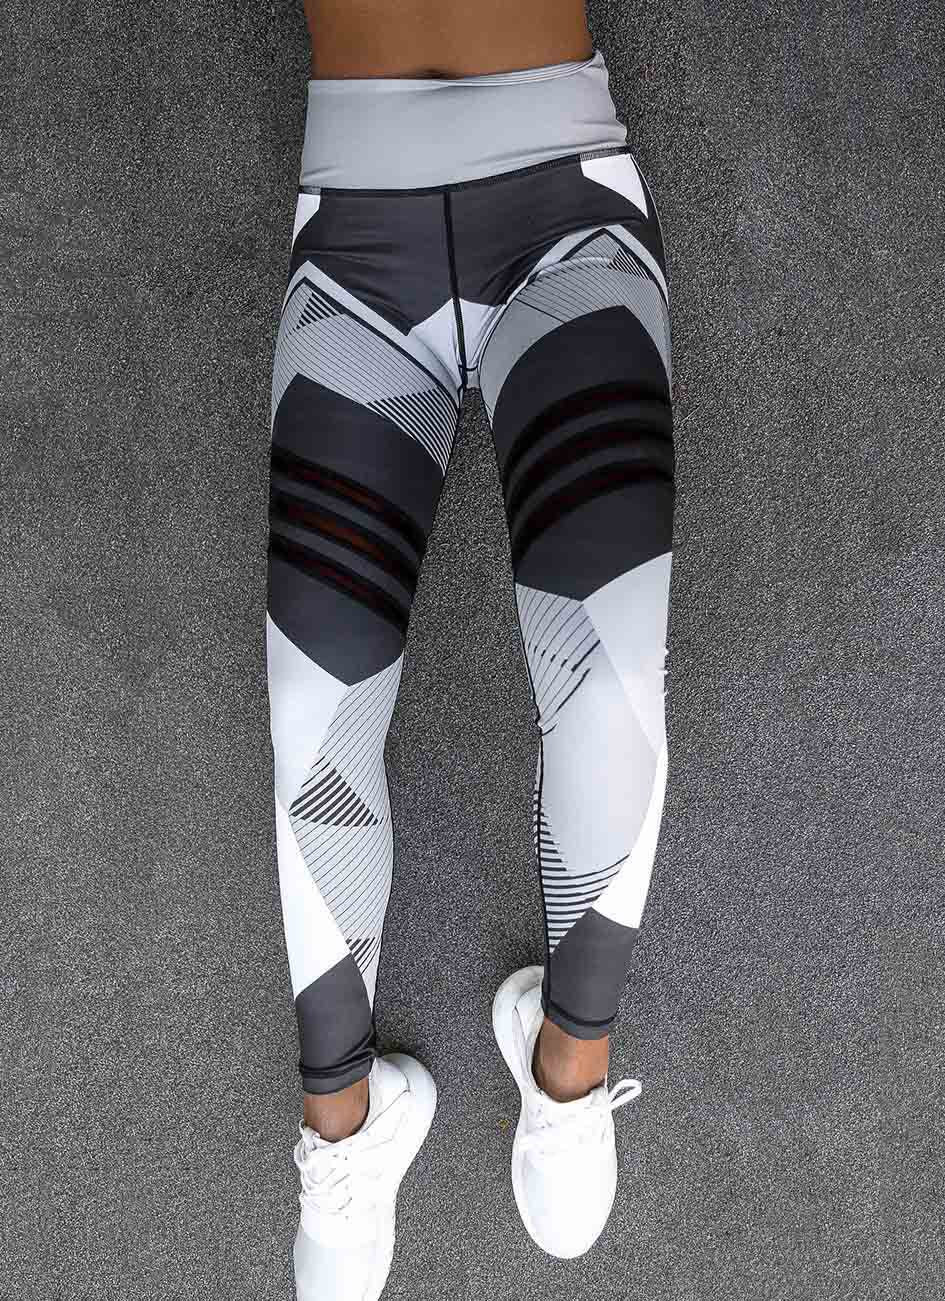 'Chaturanga' Print Yoga Pant Leggings